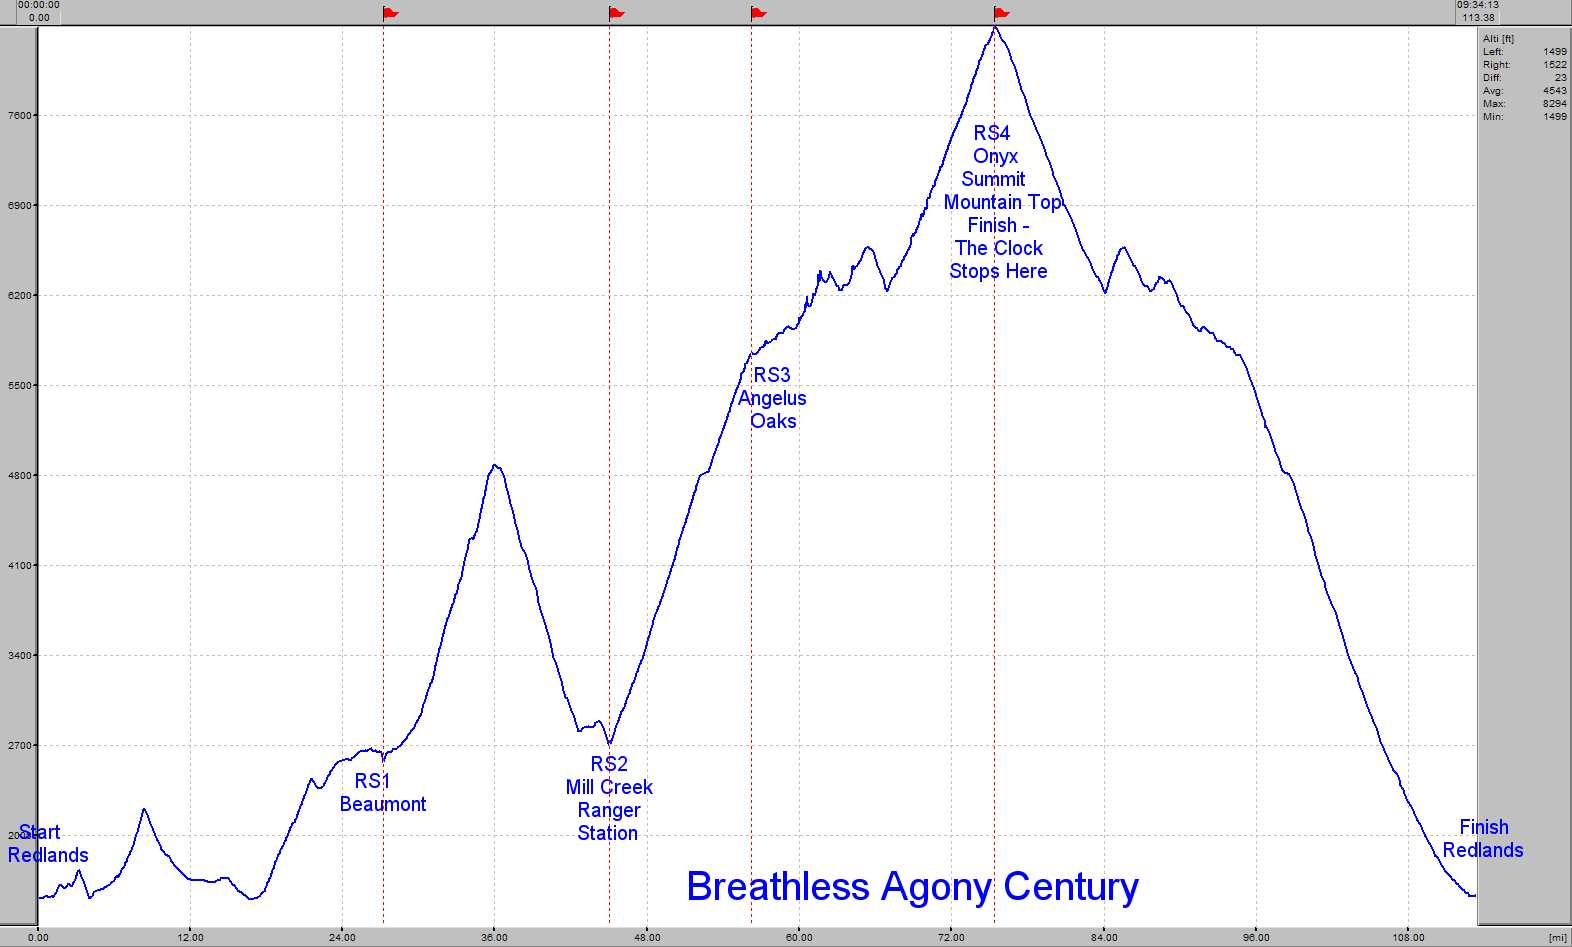 Elevation Profile for the Breathless Agony Century